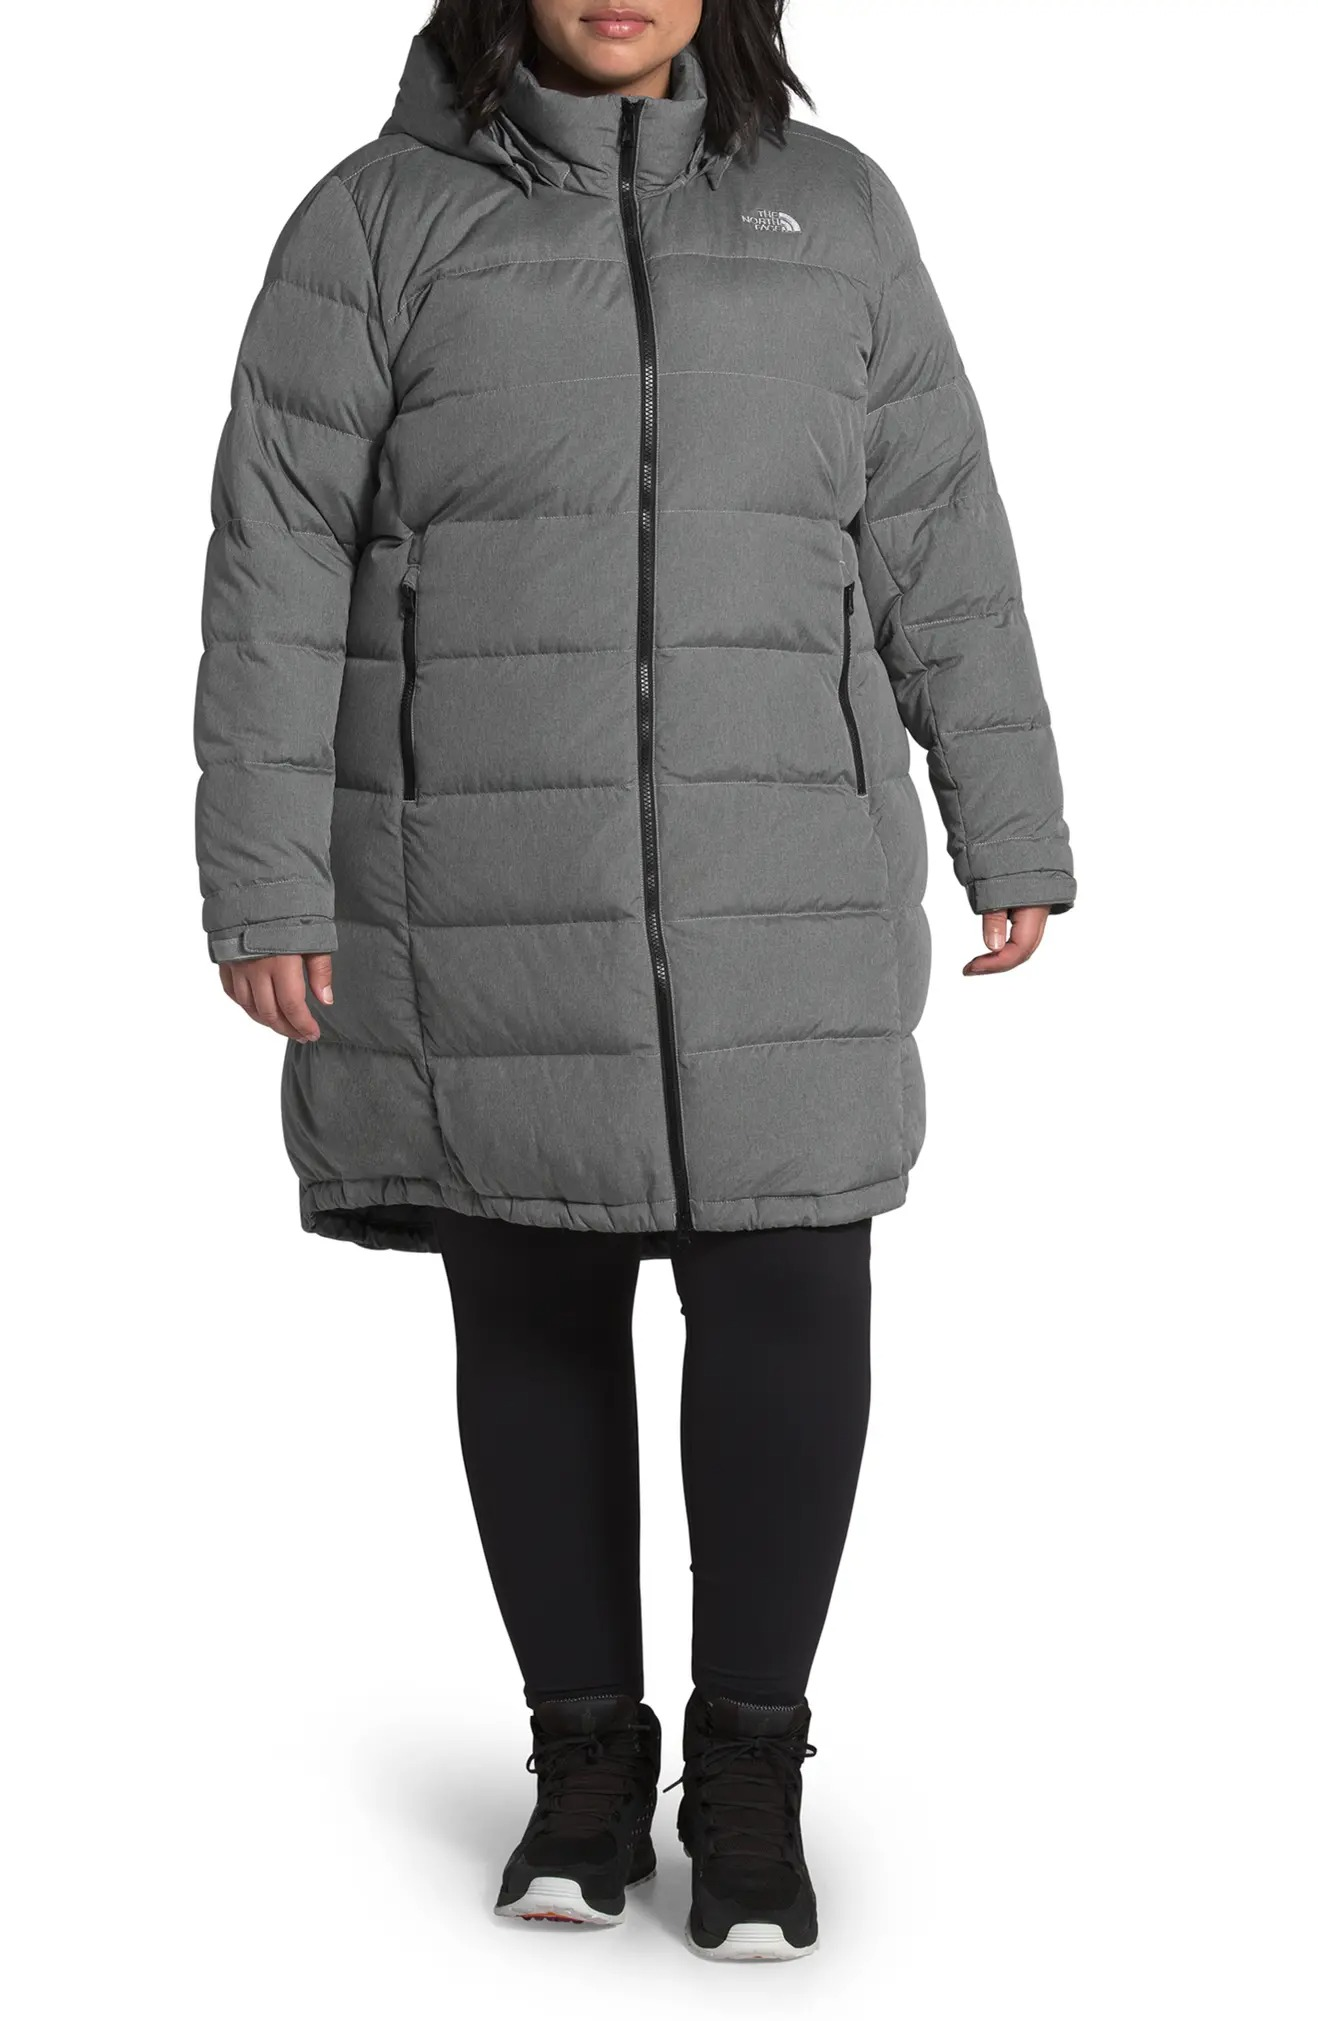 25 Must Have Plus Size Winter Coats You Want To Rock Now